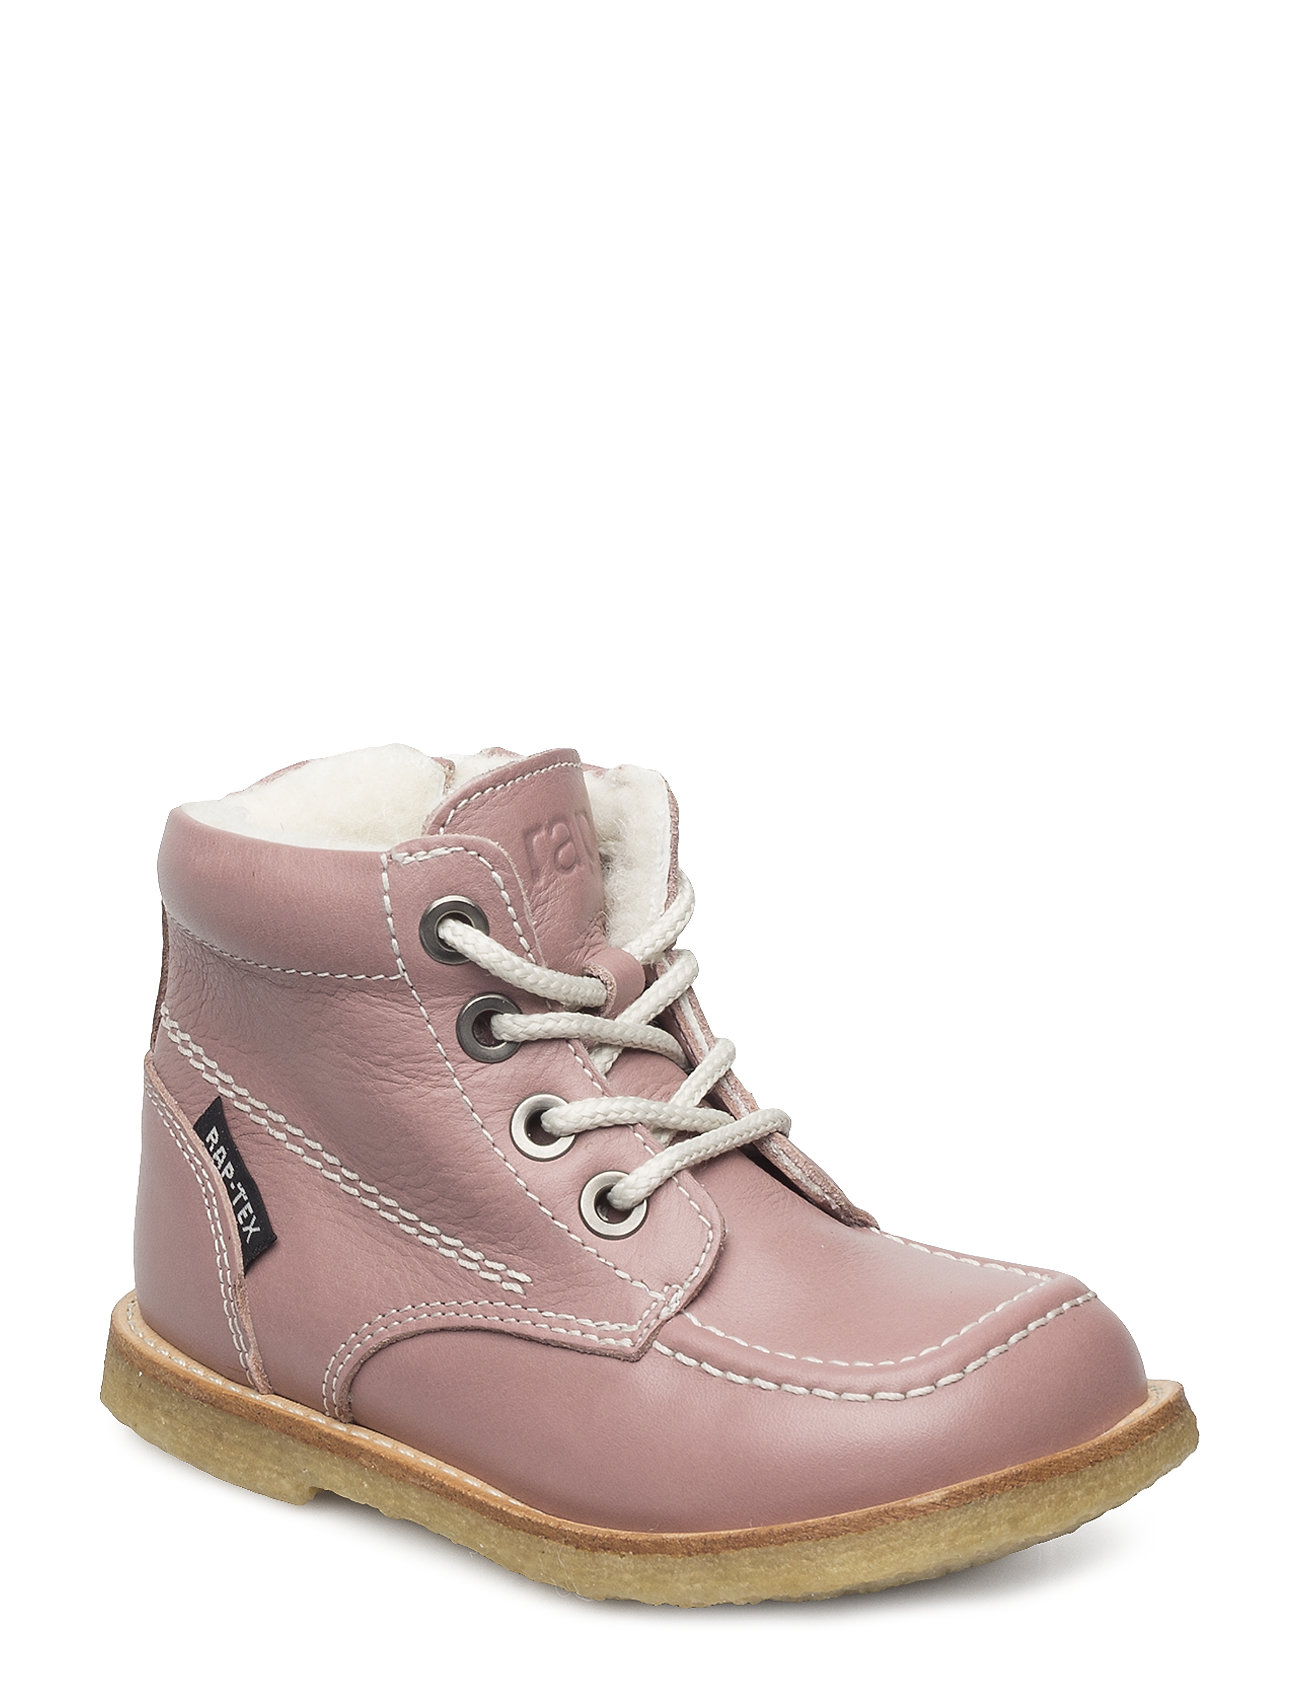 Arauto RAP ECOLOGICAL Water proof Low Boot - 19-PINK